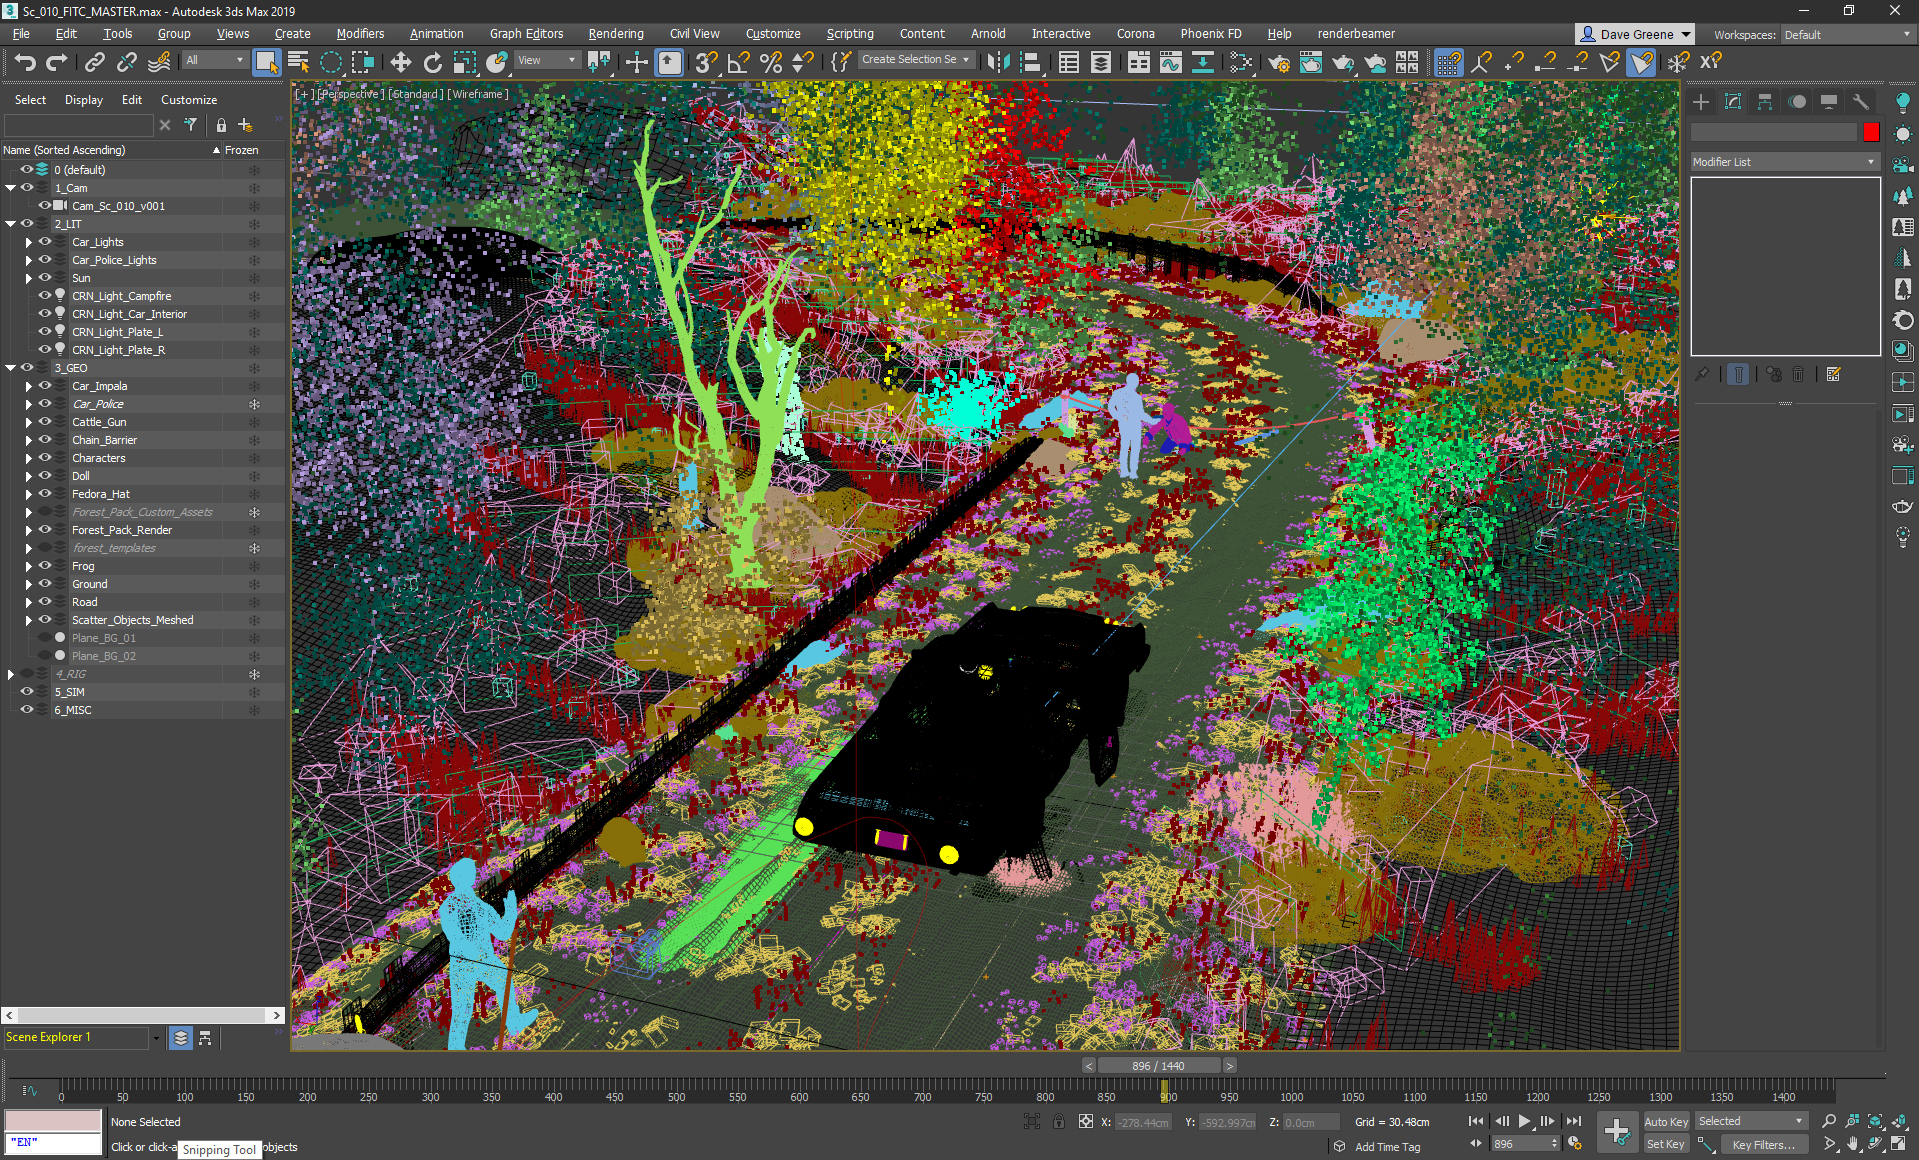 IAMSTATIC, FITC conference titles, scene layout